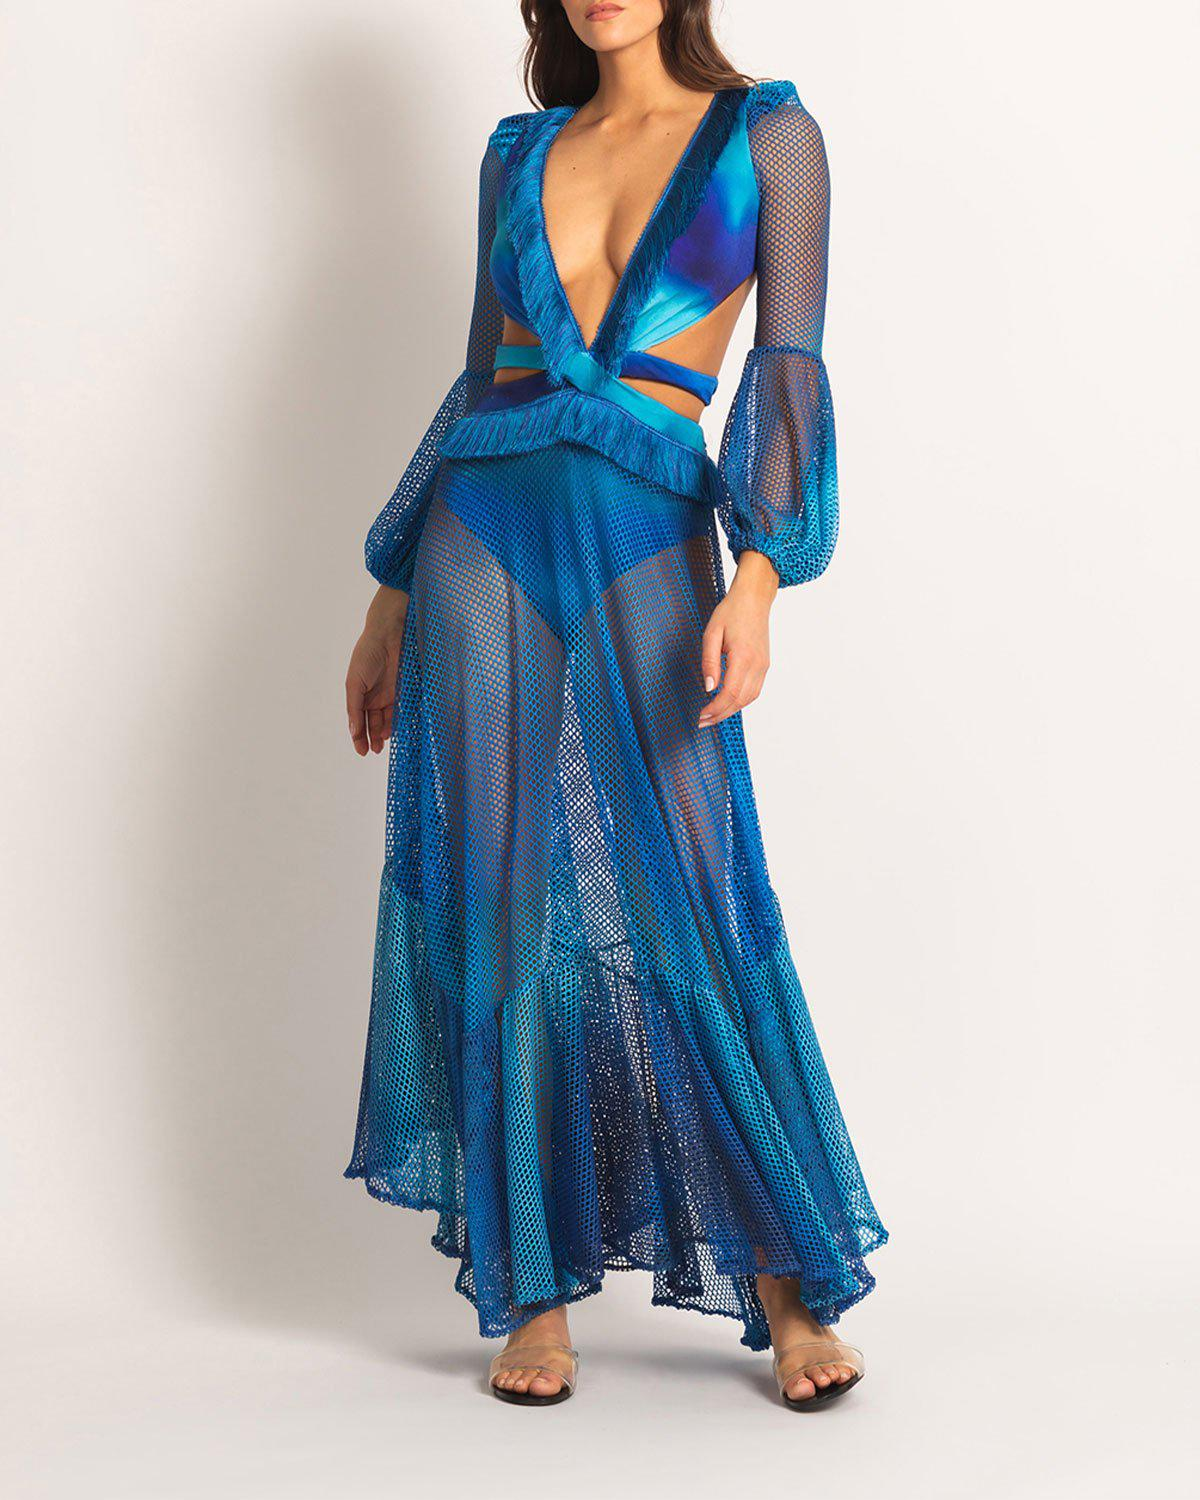 Ombre Netted Beach Dress